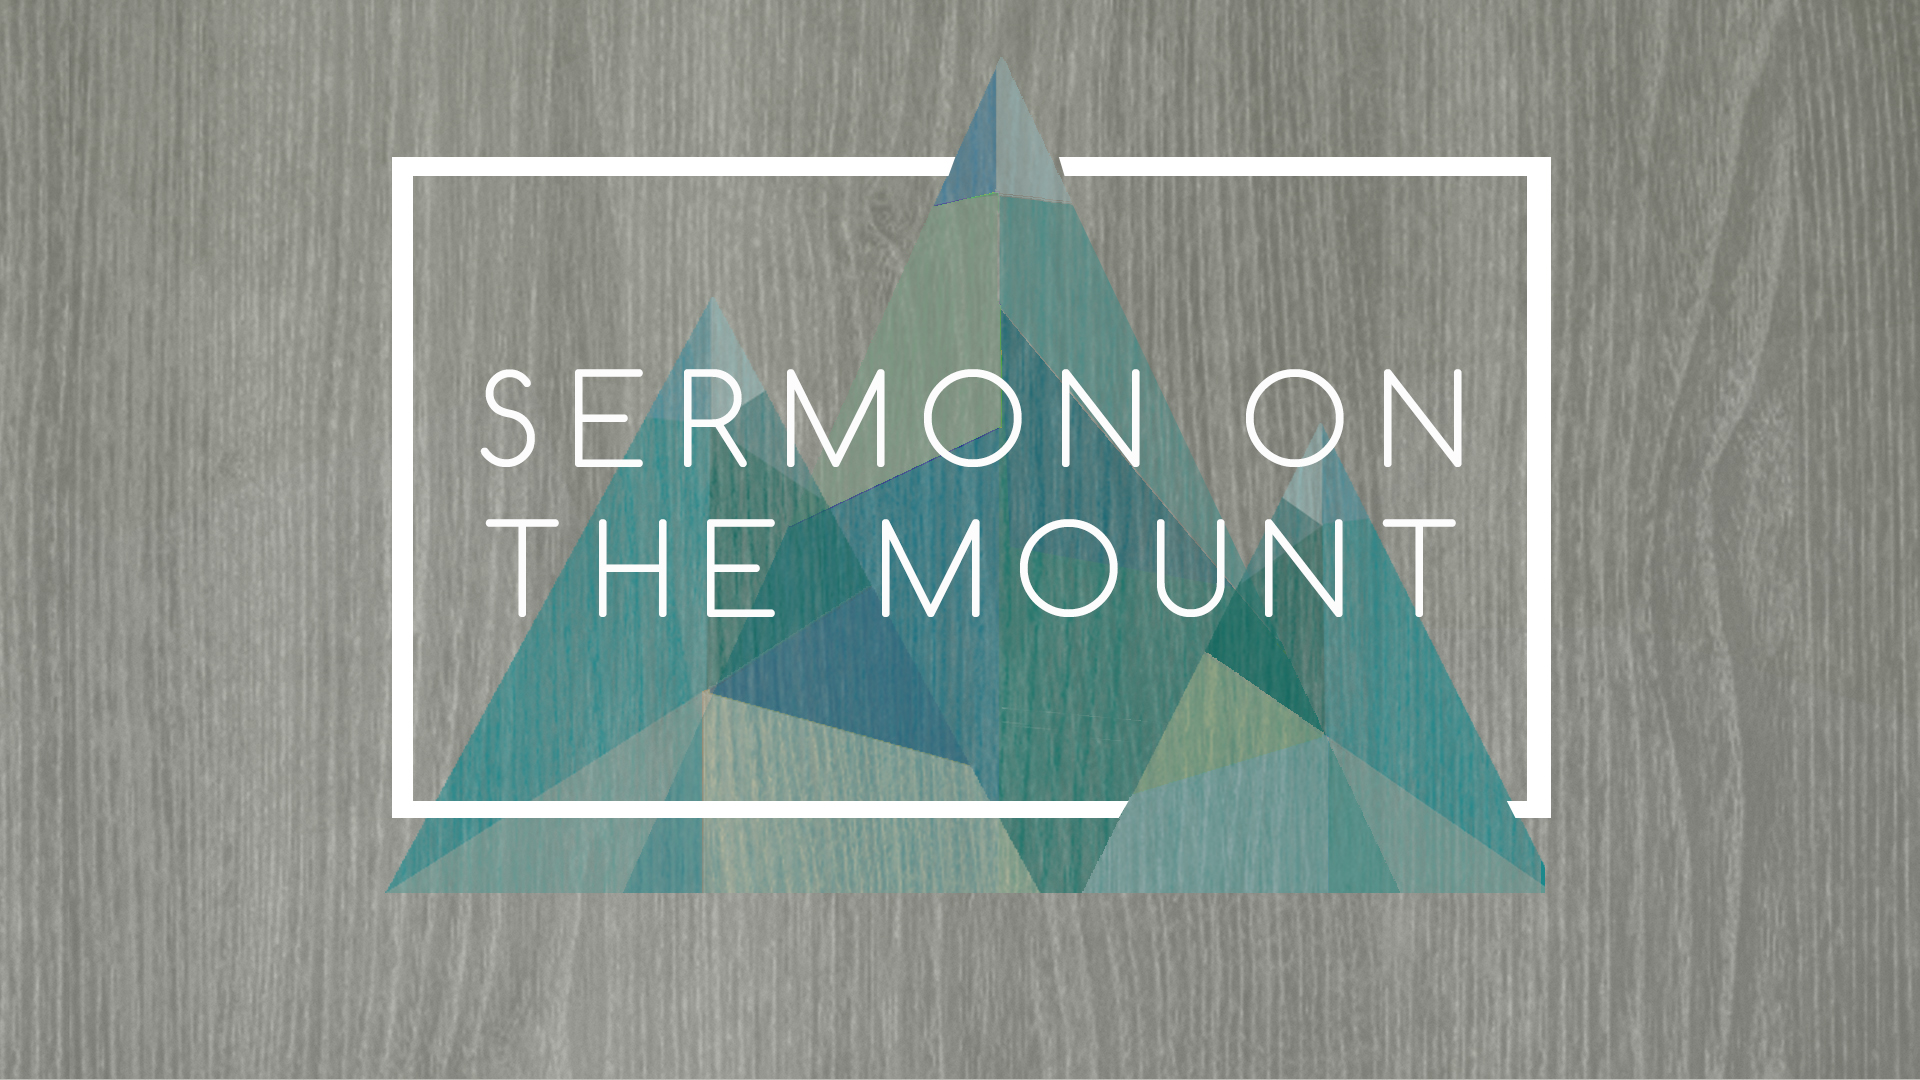 Listen to Sunday's sermon over Matthew 6:25-34 about how anxiety and worry are not from God.